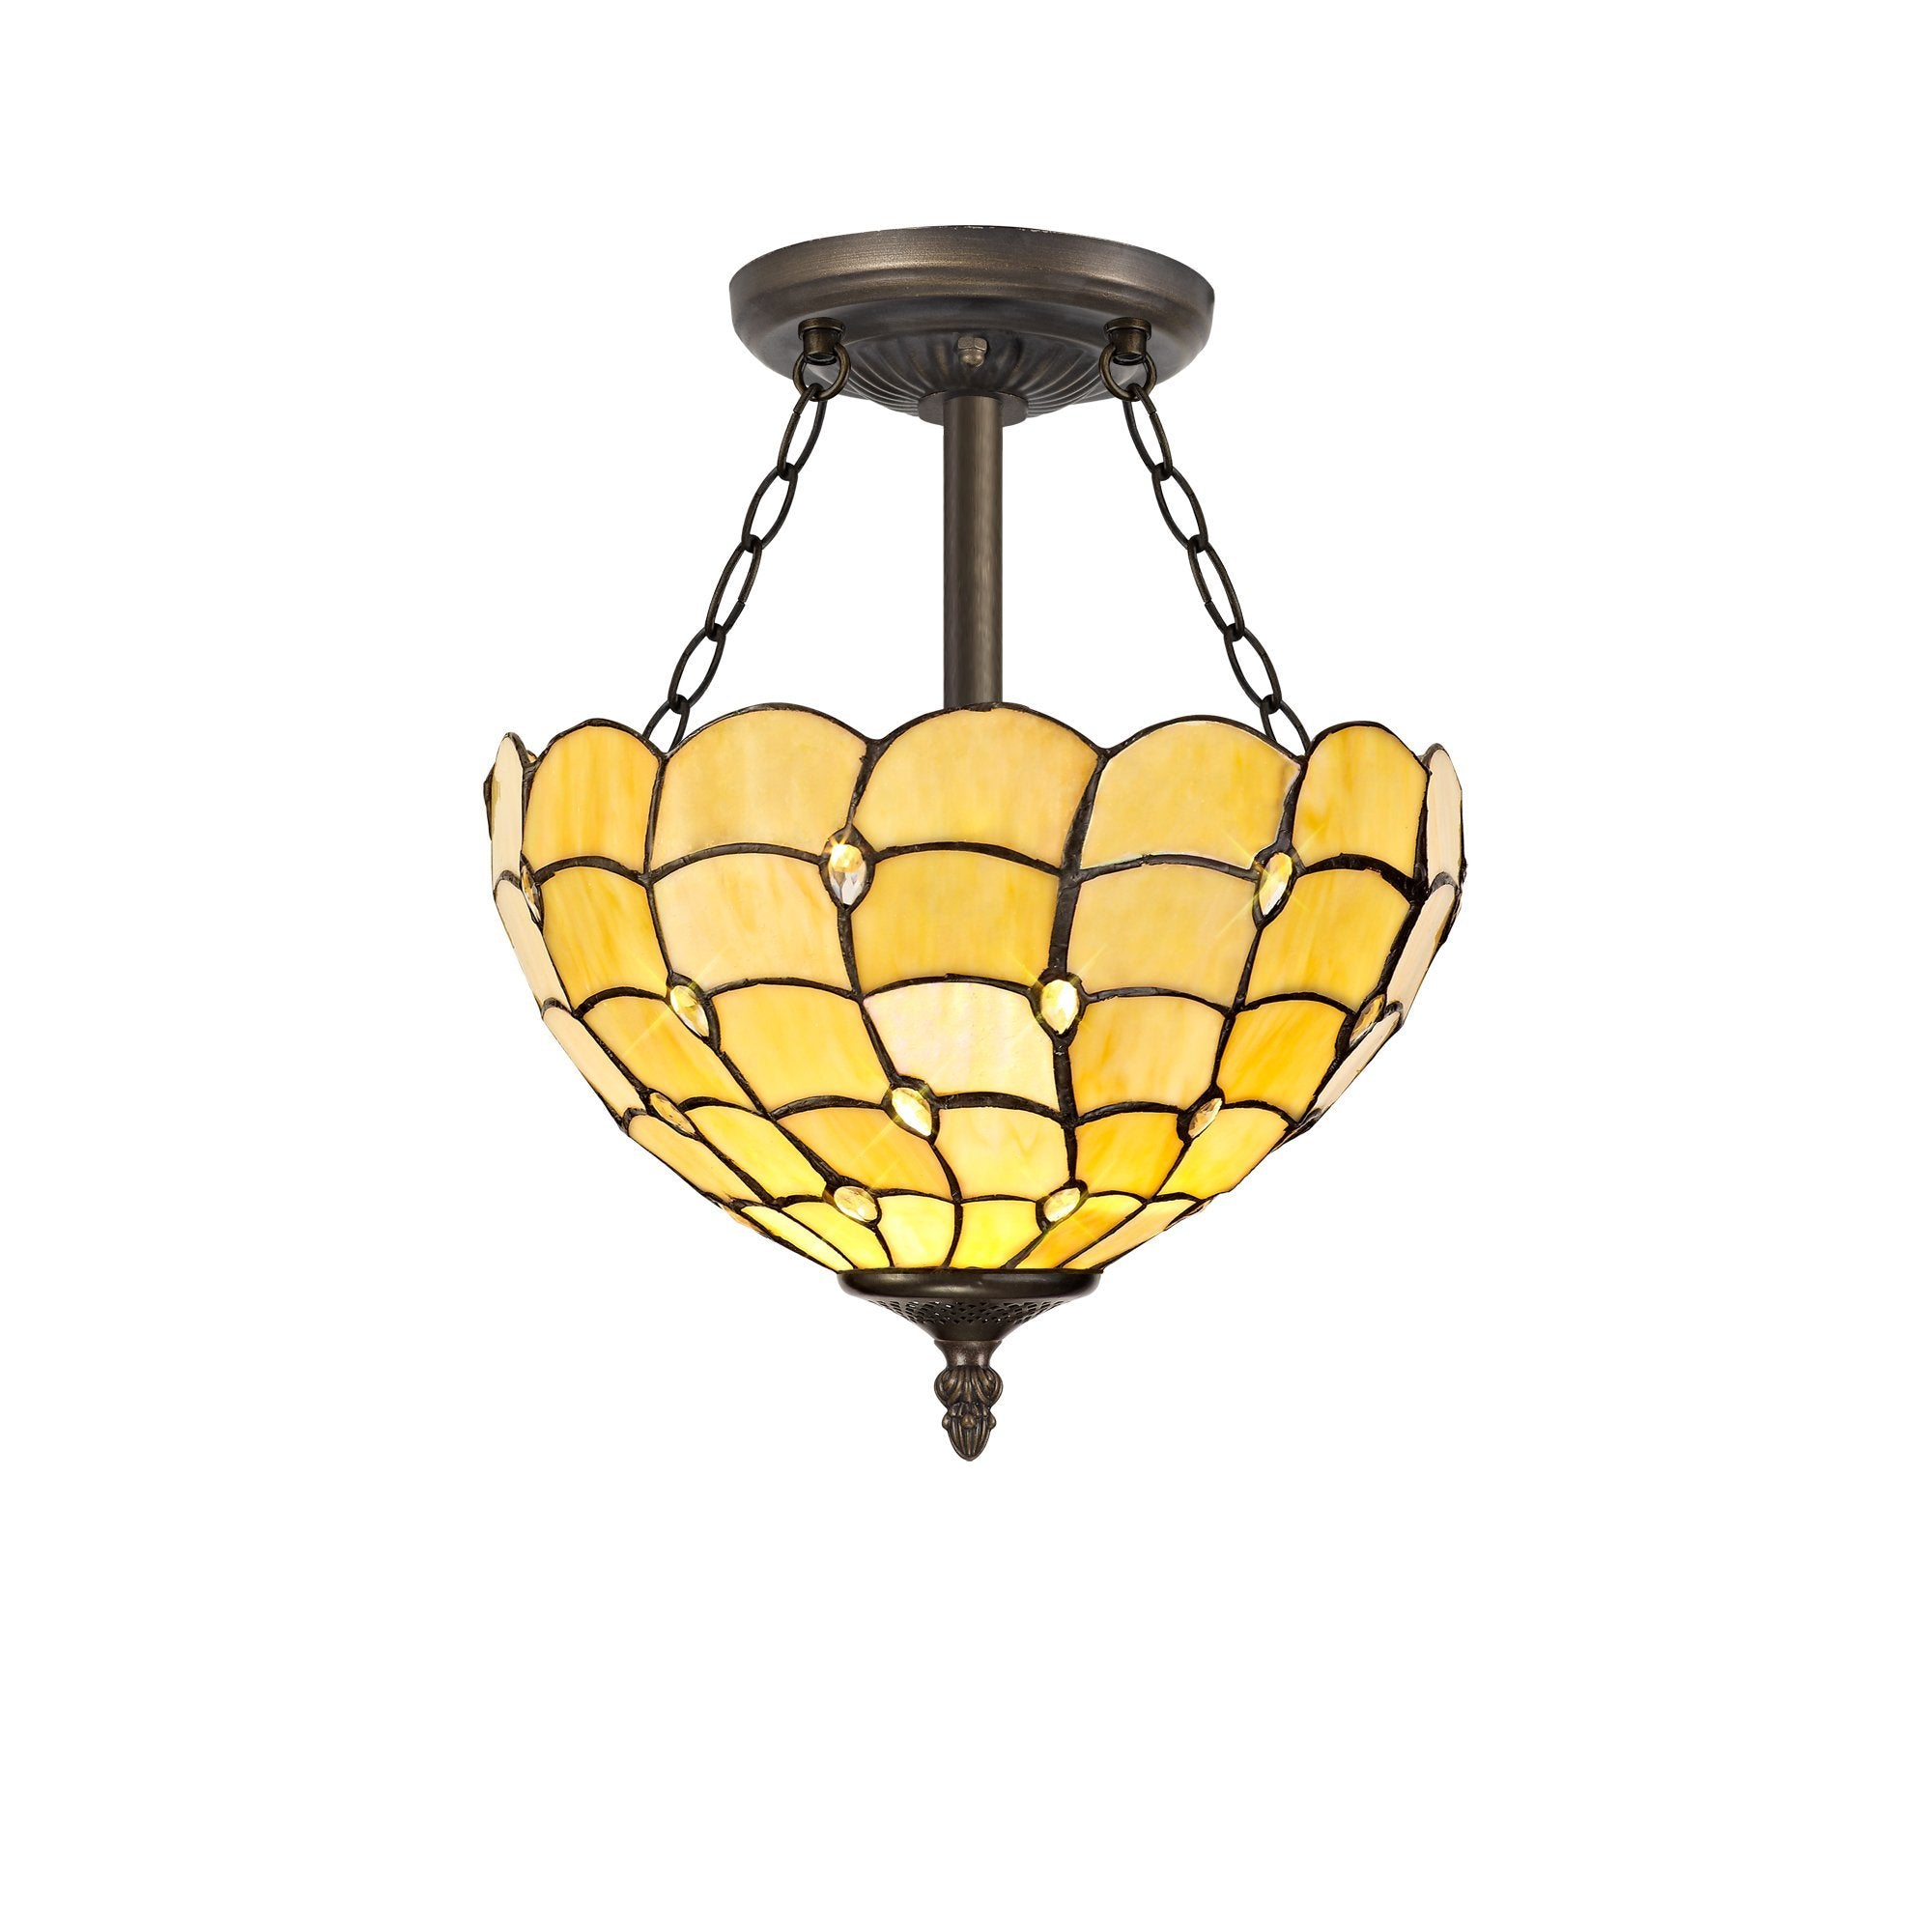 Helena 3 Light Semi Ceiling E27 With 30cm Tiffany Shade, Beige/Twirl Crystal/Aged Antique Brass